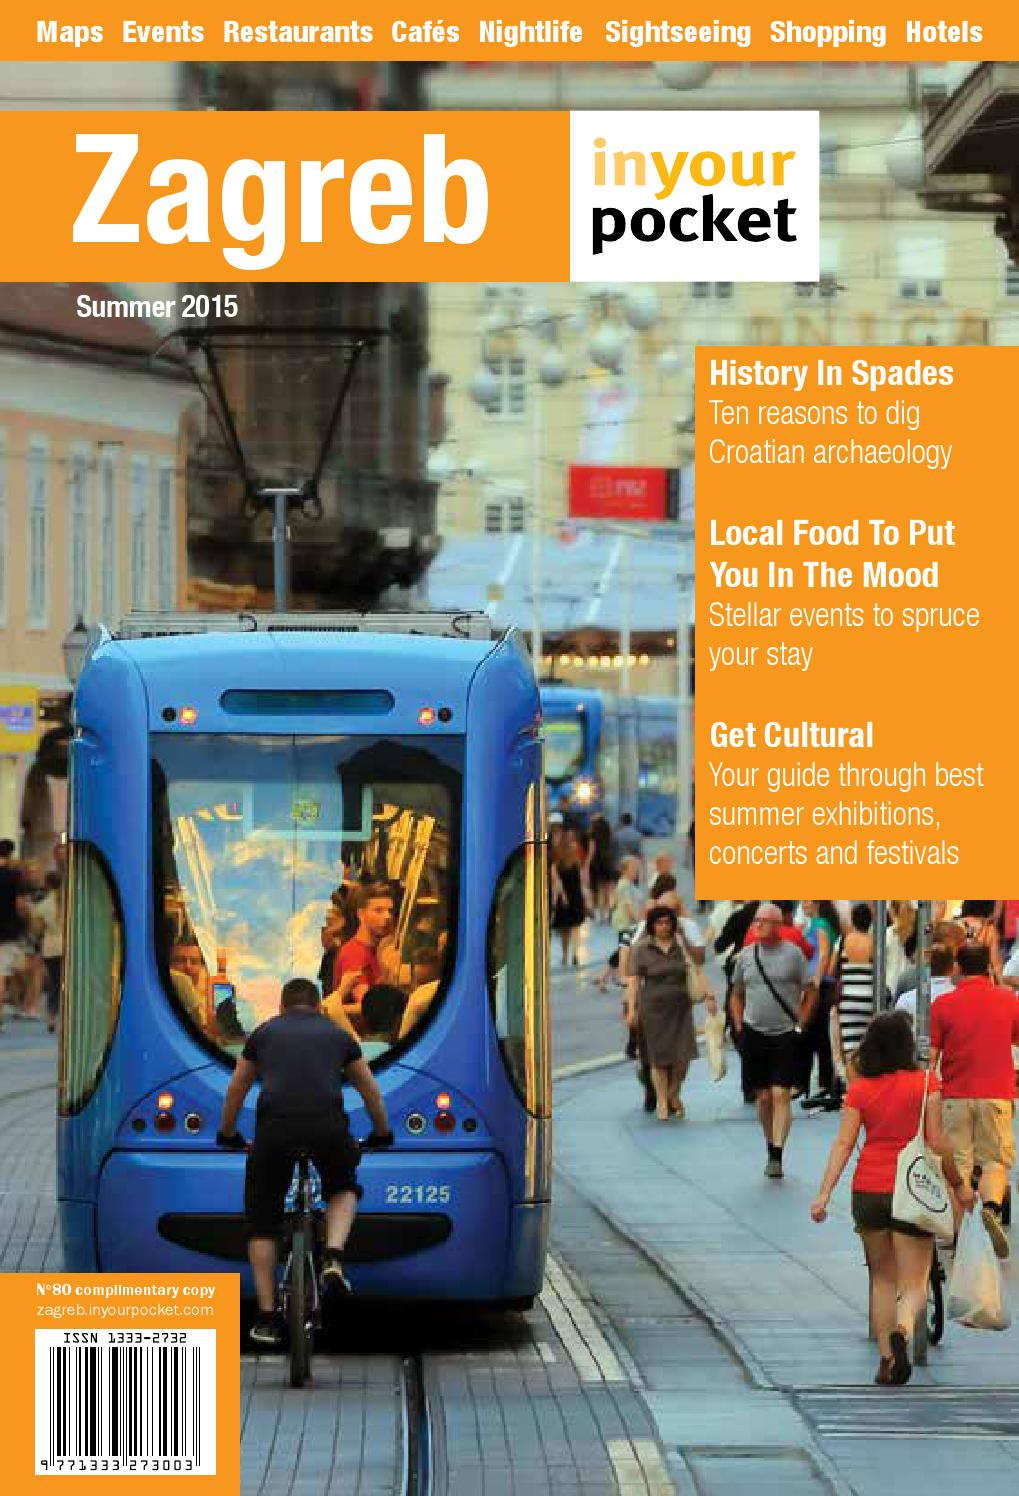 Zagreb In Your Pocket No80 By In Your Pocket City Guides Issuu